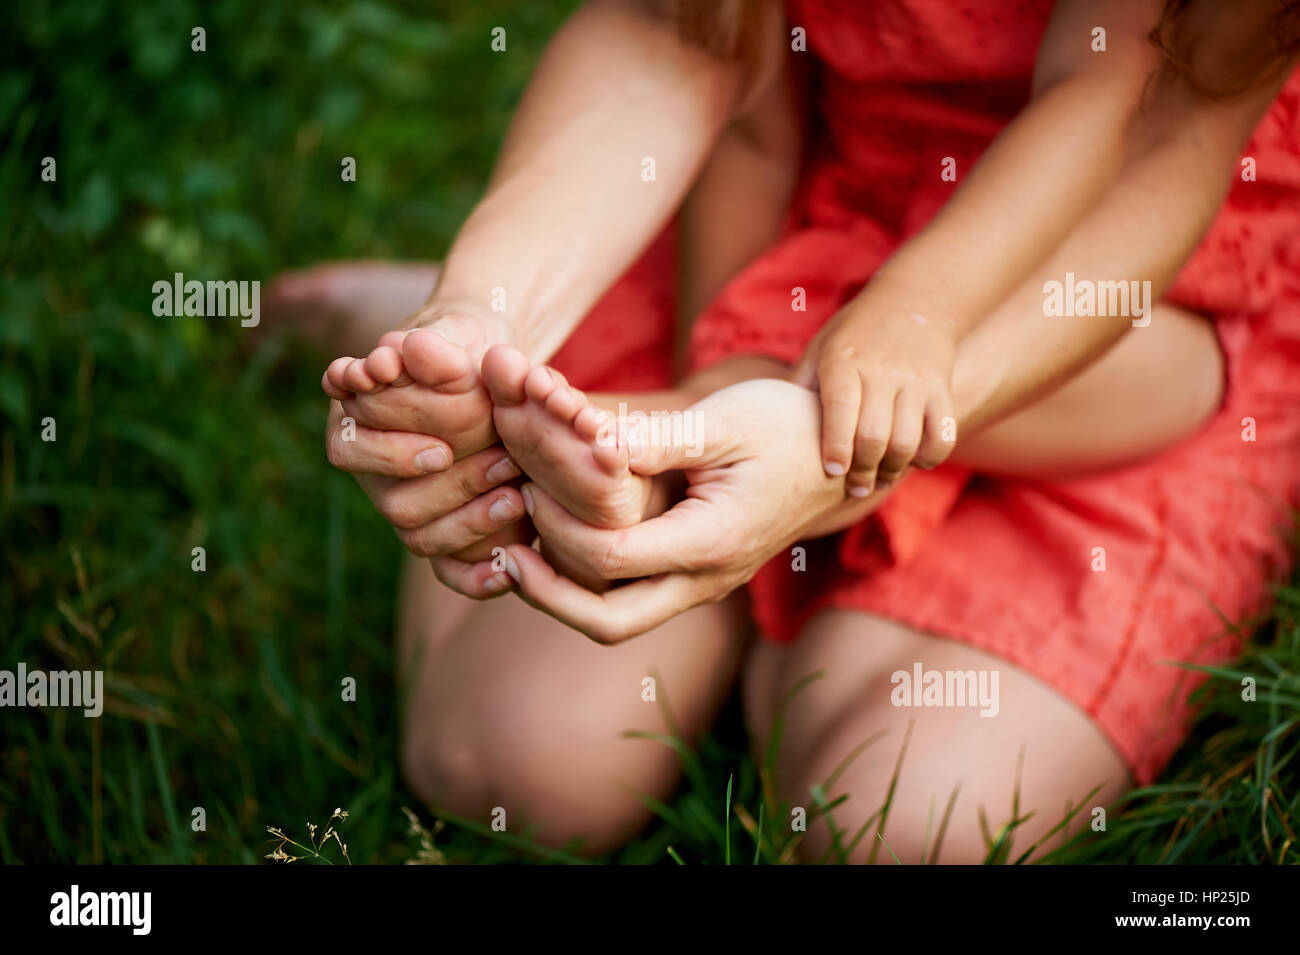 Mother holding a child, see the hands of mothers and baby feet. The feeling of care and motherhood. - Stock Image